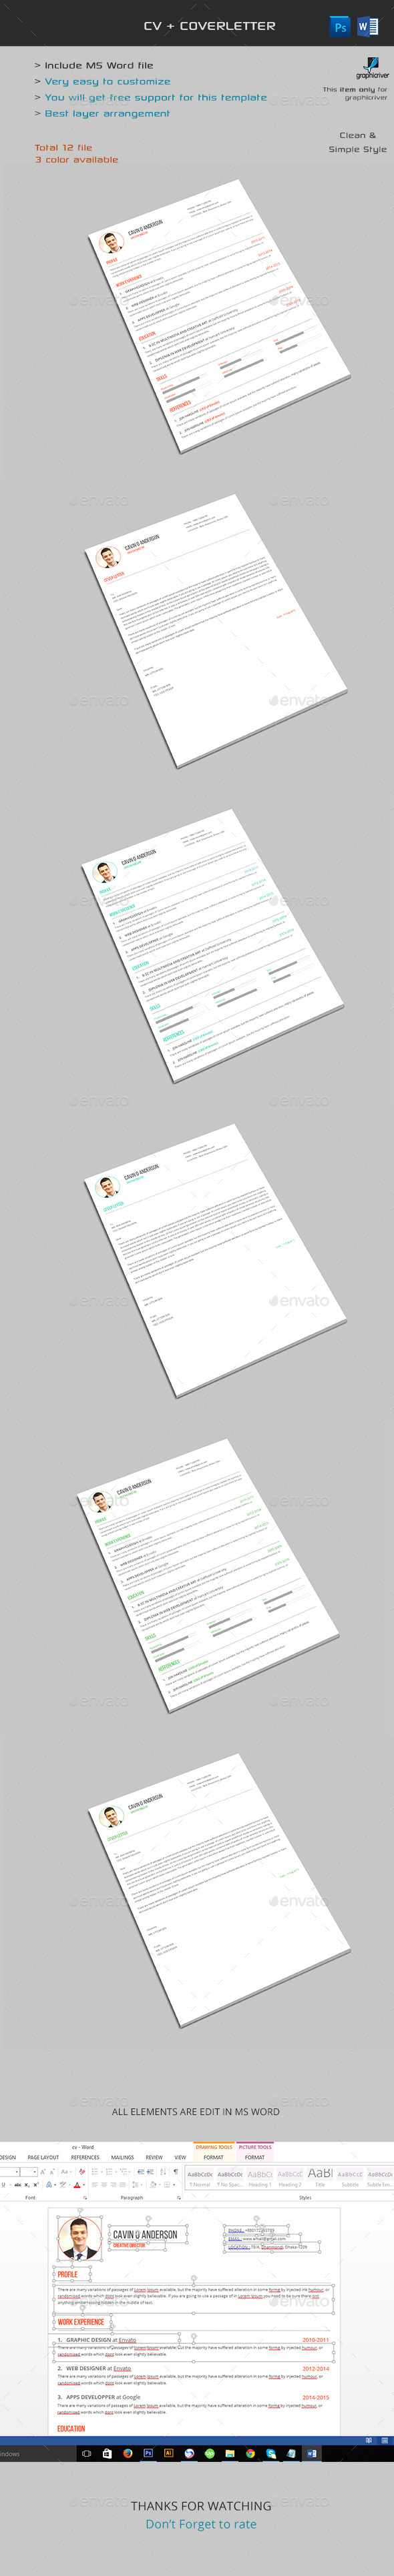 The CV/Resume - Stationery Print Templates